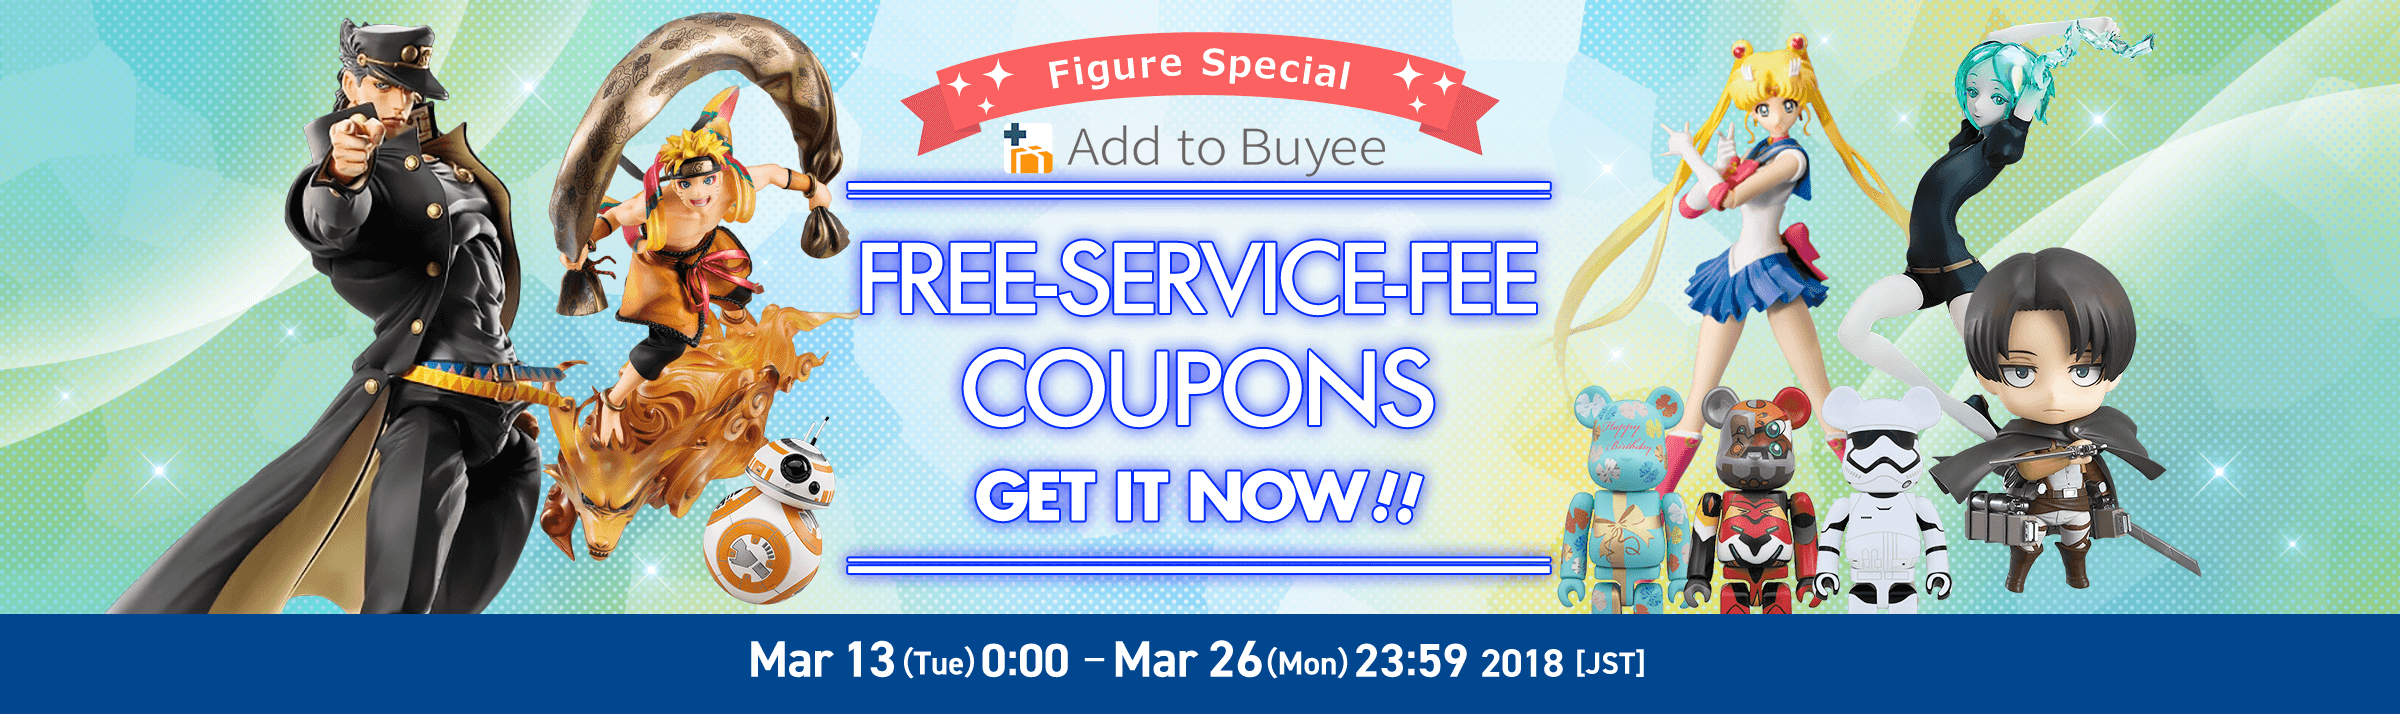 Figure Special! Free Service Fee Coupon Giveaway!!